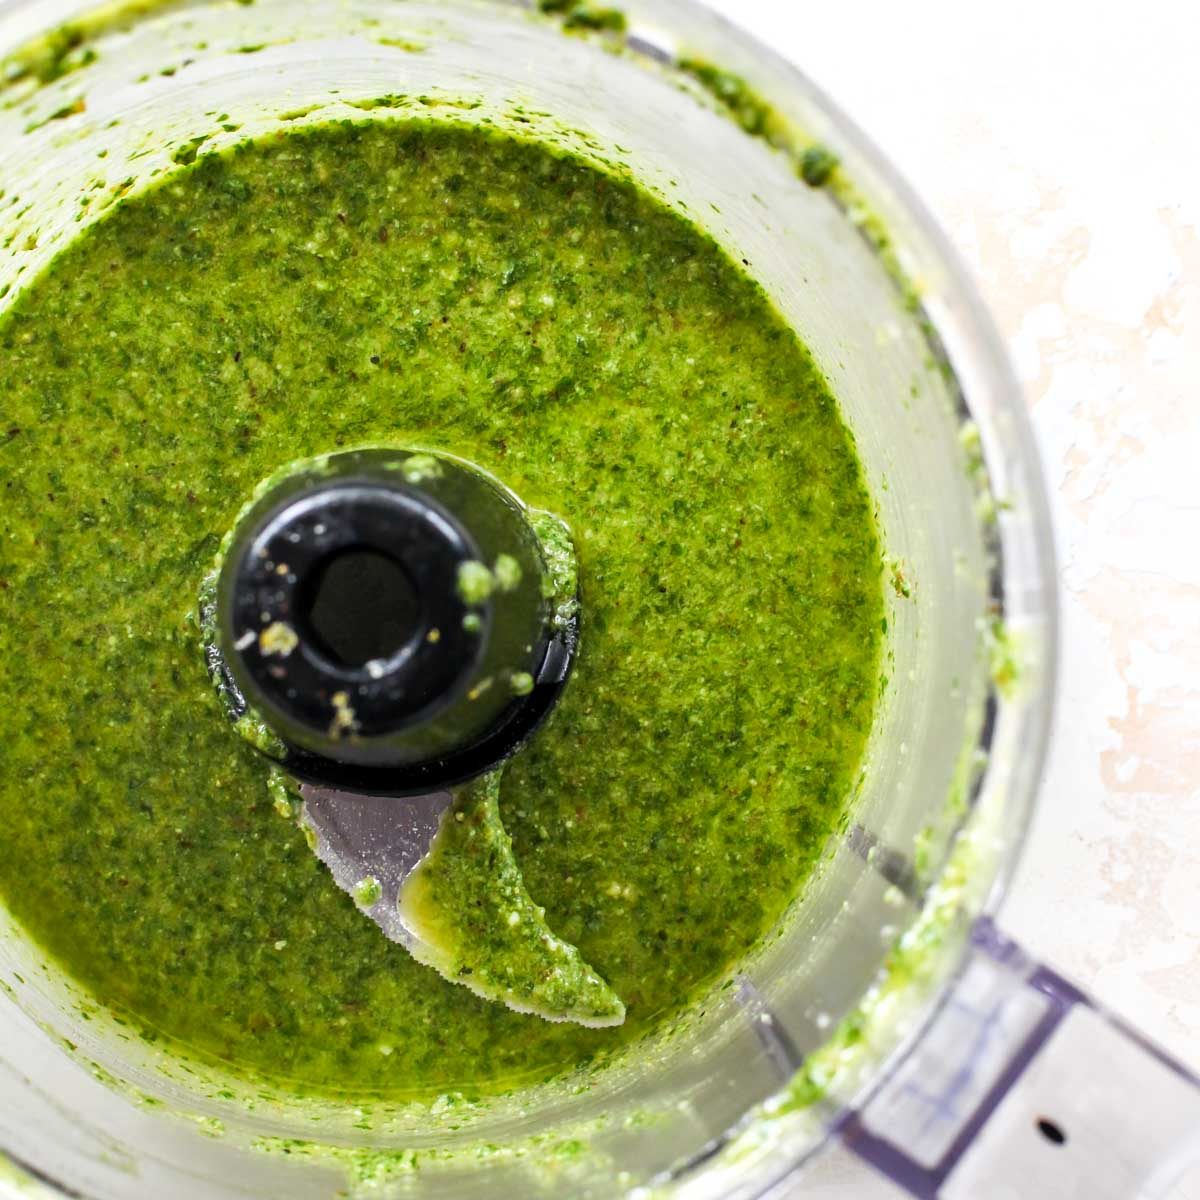 Pesto blended in a food processor